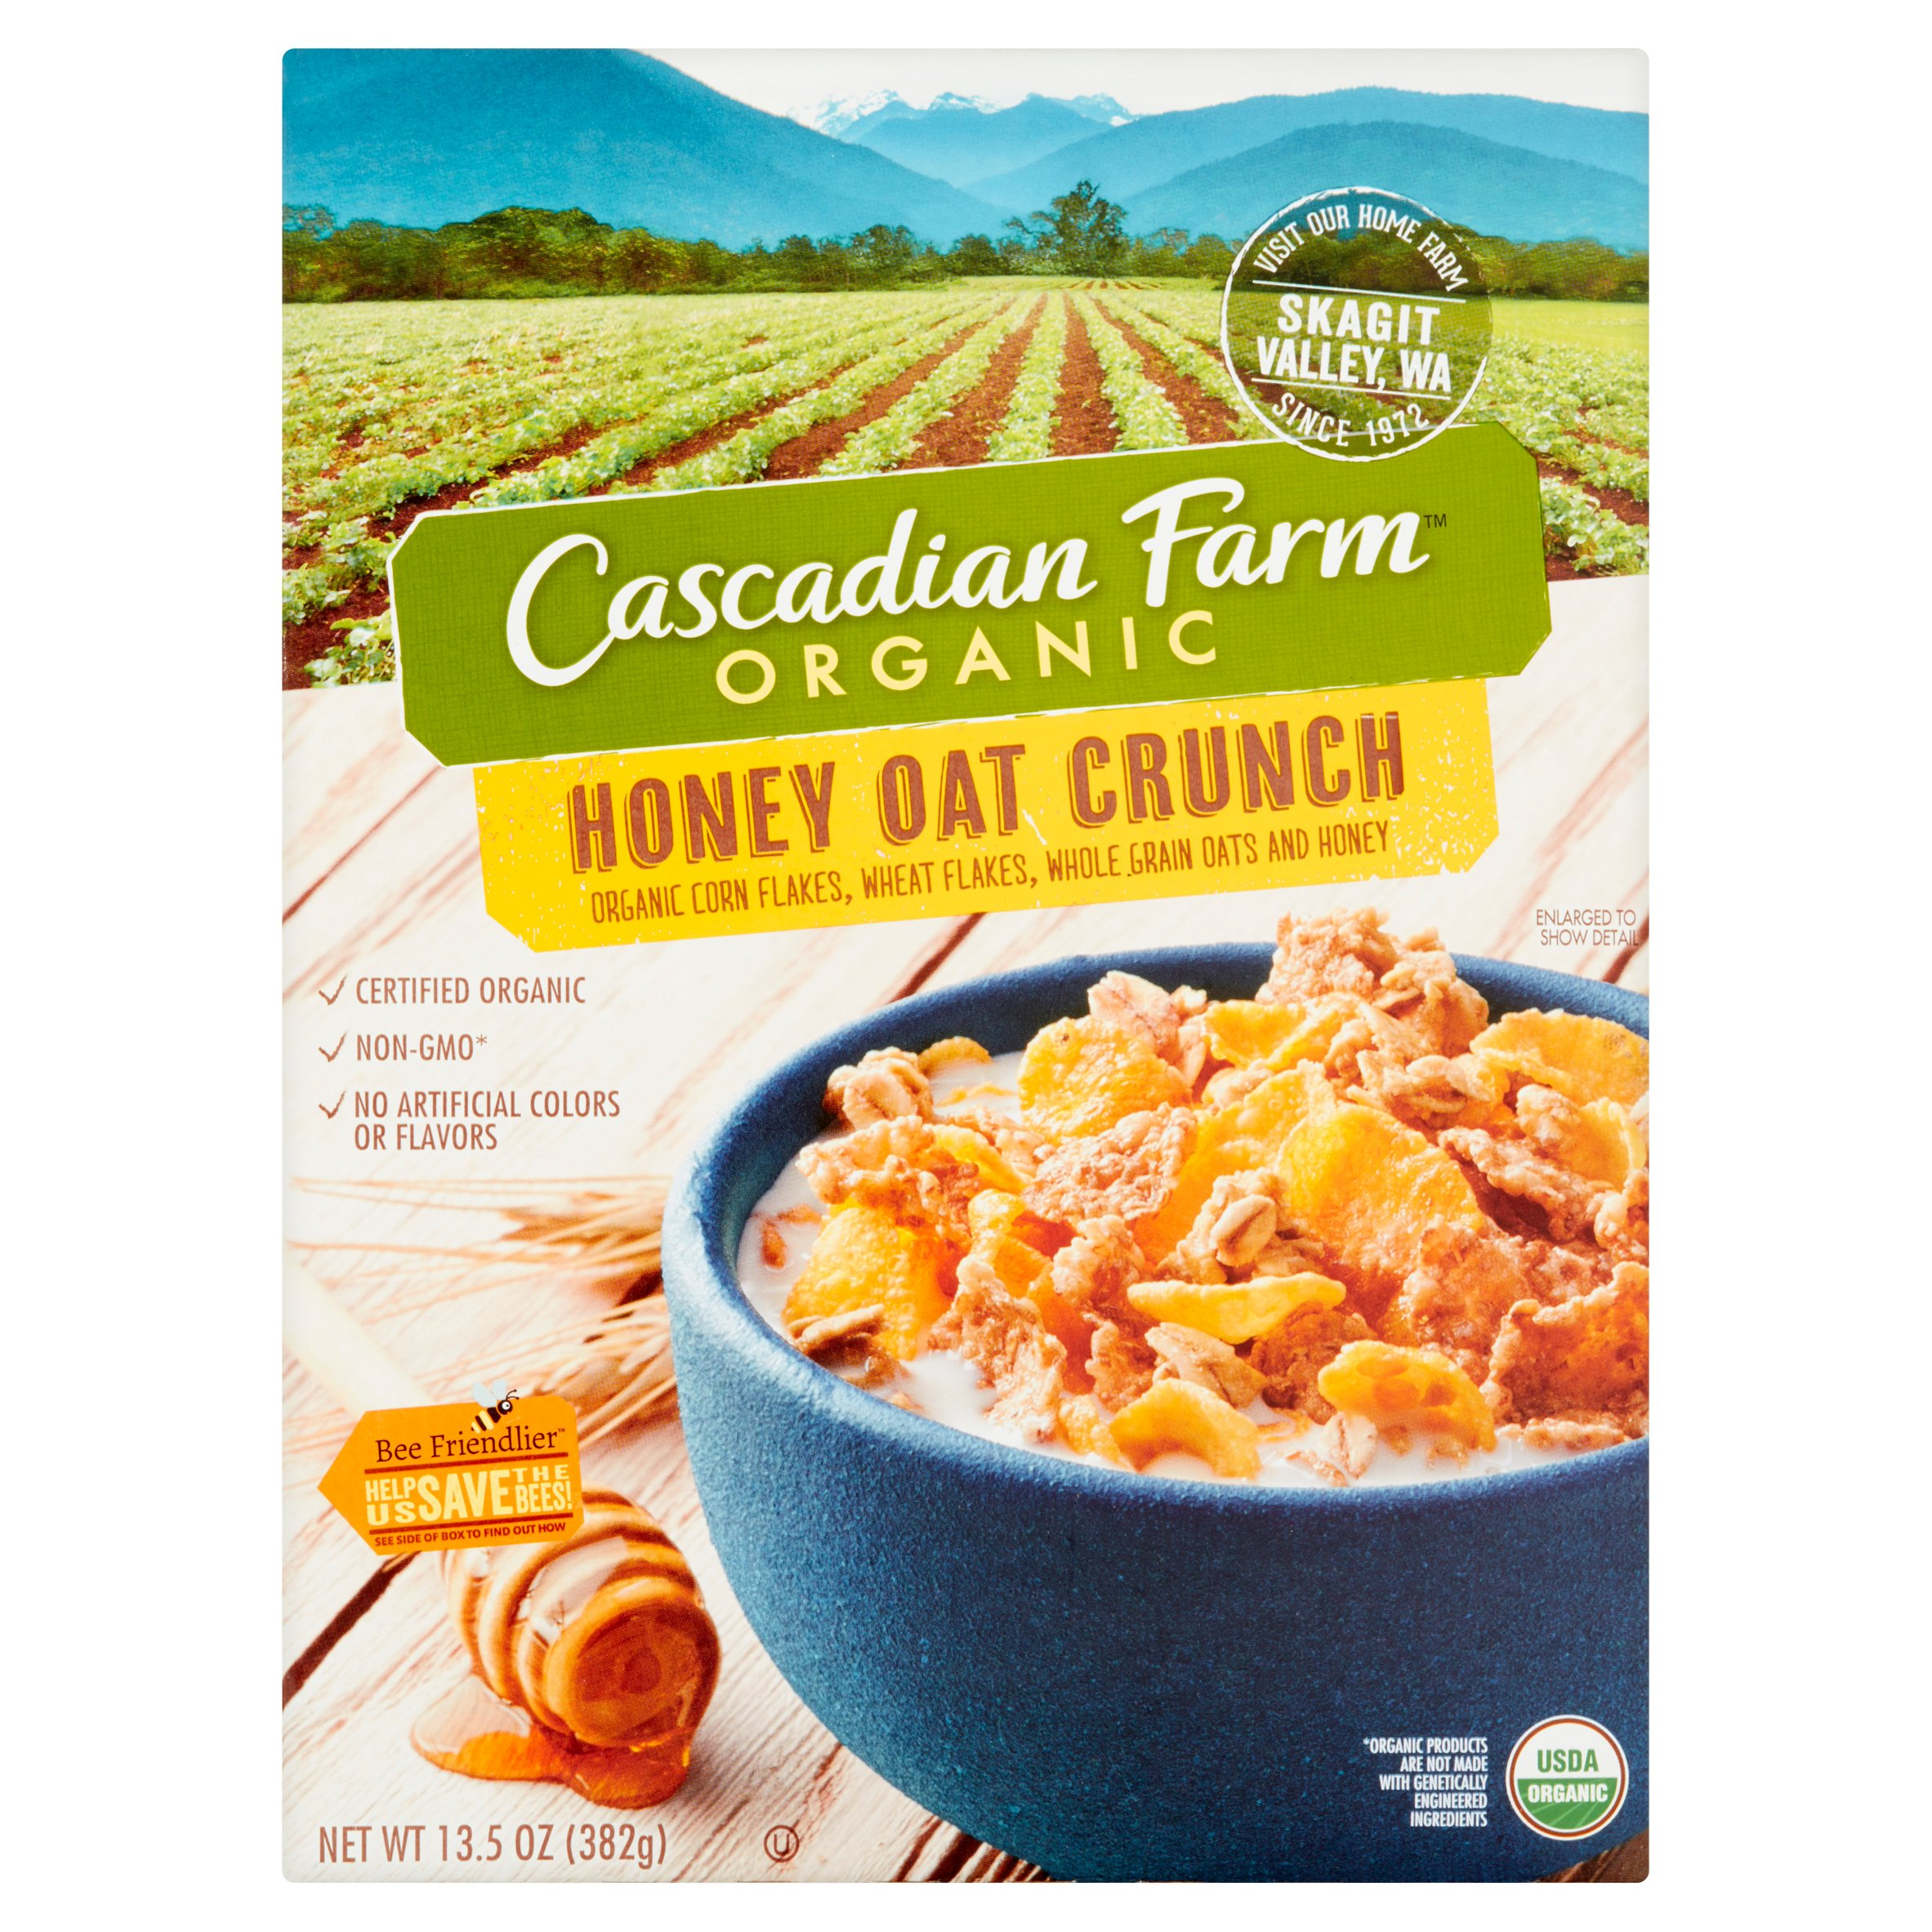 Cascadian Farm Organic Honey Oat Crunch Cereal 13.5 oz Box by SMALL PLANET FOODS, INC.